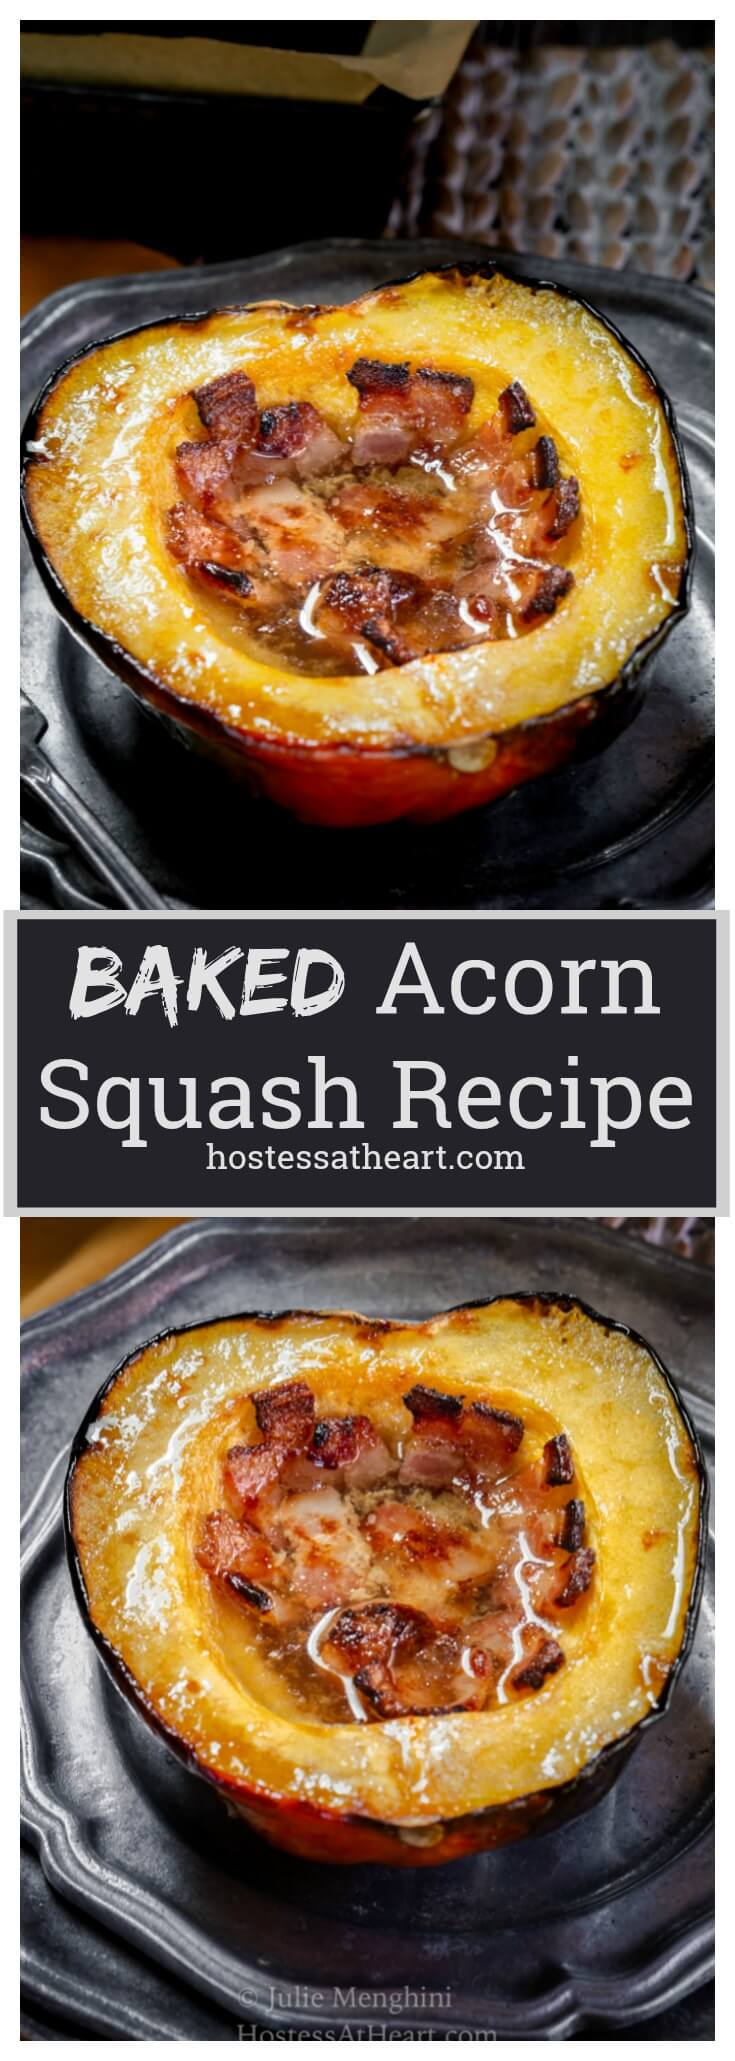 Baked Acorn Squash with Bacon and Brown Sugar is sweet, smokey and perfect for Fall.  It's delicious as a meal or side dish | HostessAtHeart.com #bakedacornsquash #acornsquash #sidedish #fallrecipes